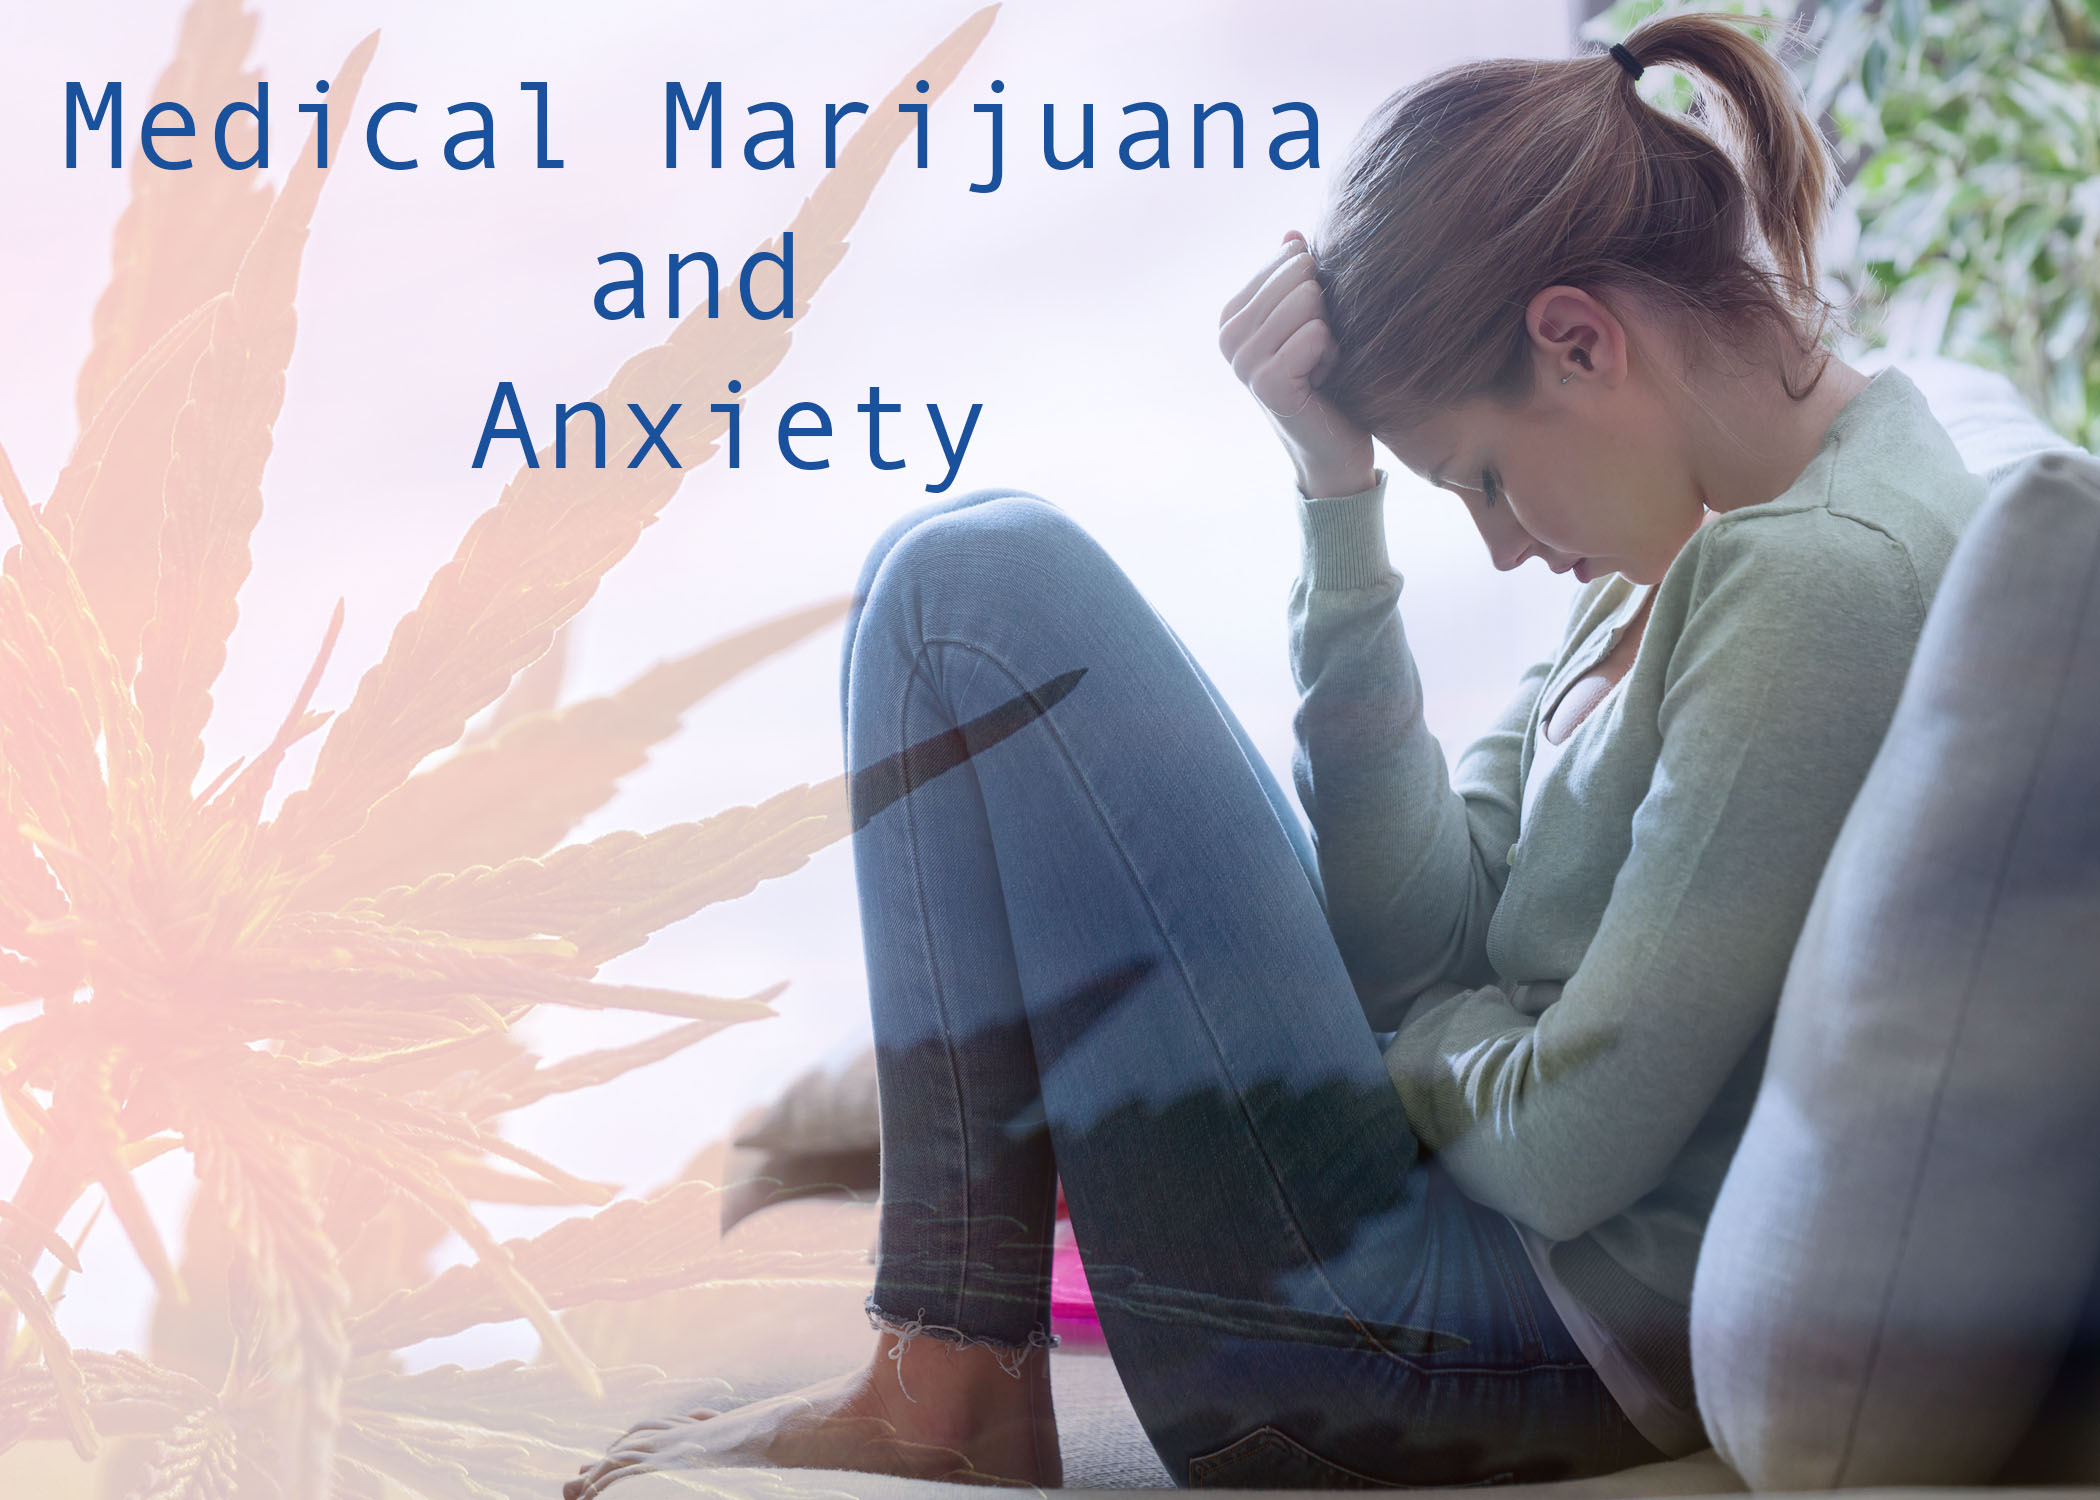 Medical Marijuana and Anxiety